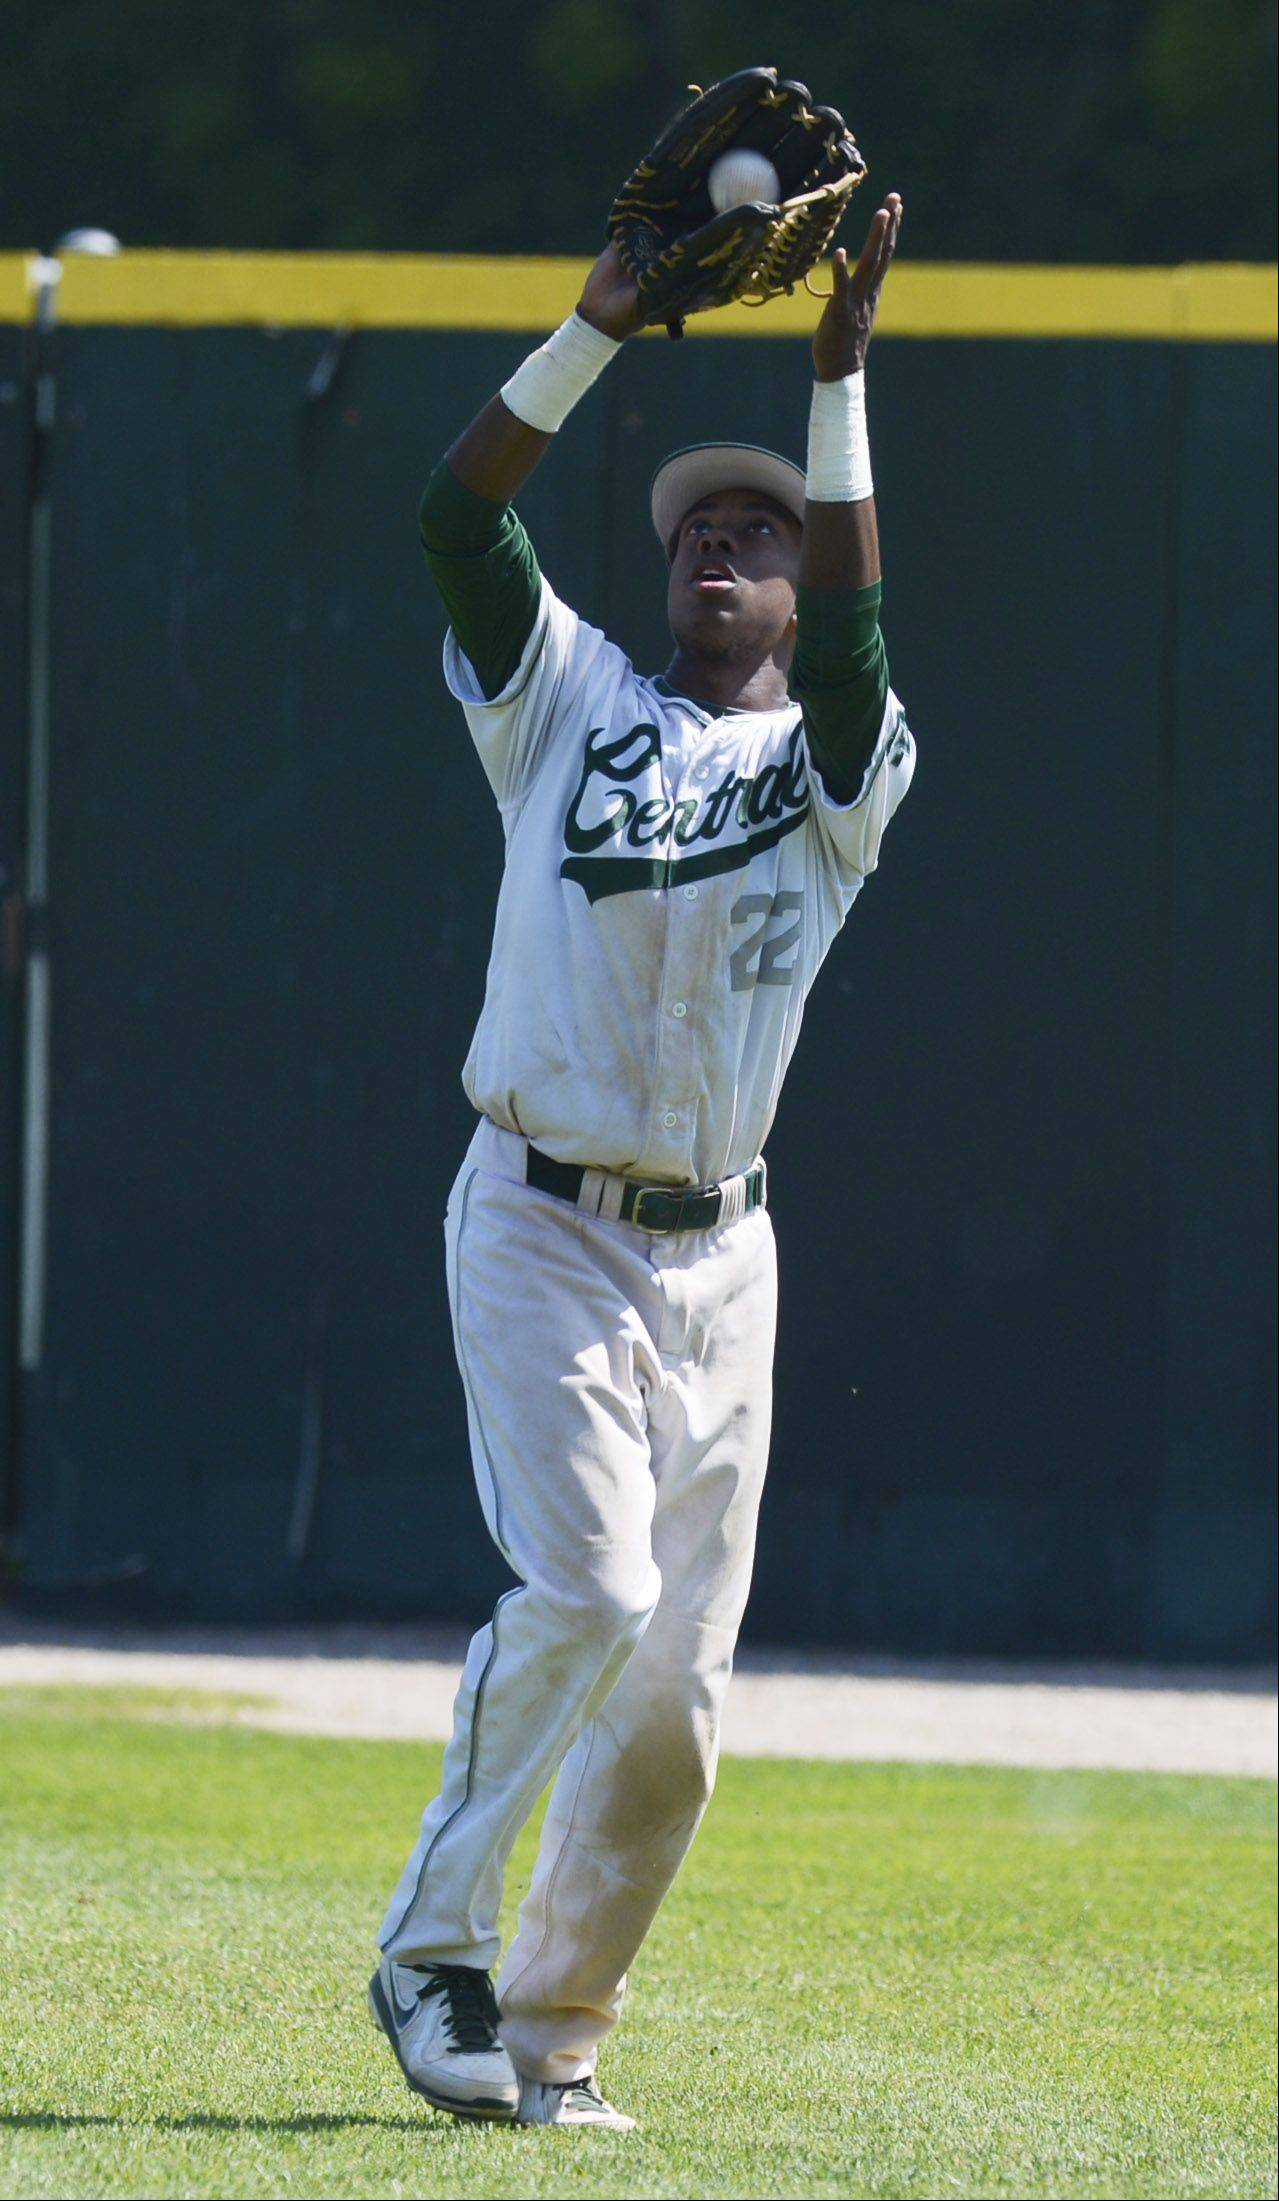 Grayslake Central right fielder Sterling Dixon hauls in a flyball during the Class 3A state baseball semifinal against St. Francis at Silver Cross Field in Joliet on Friday.